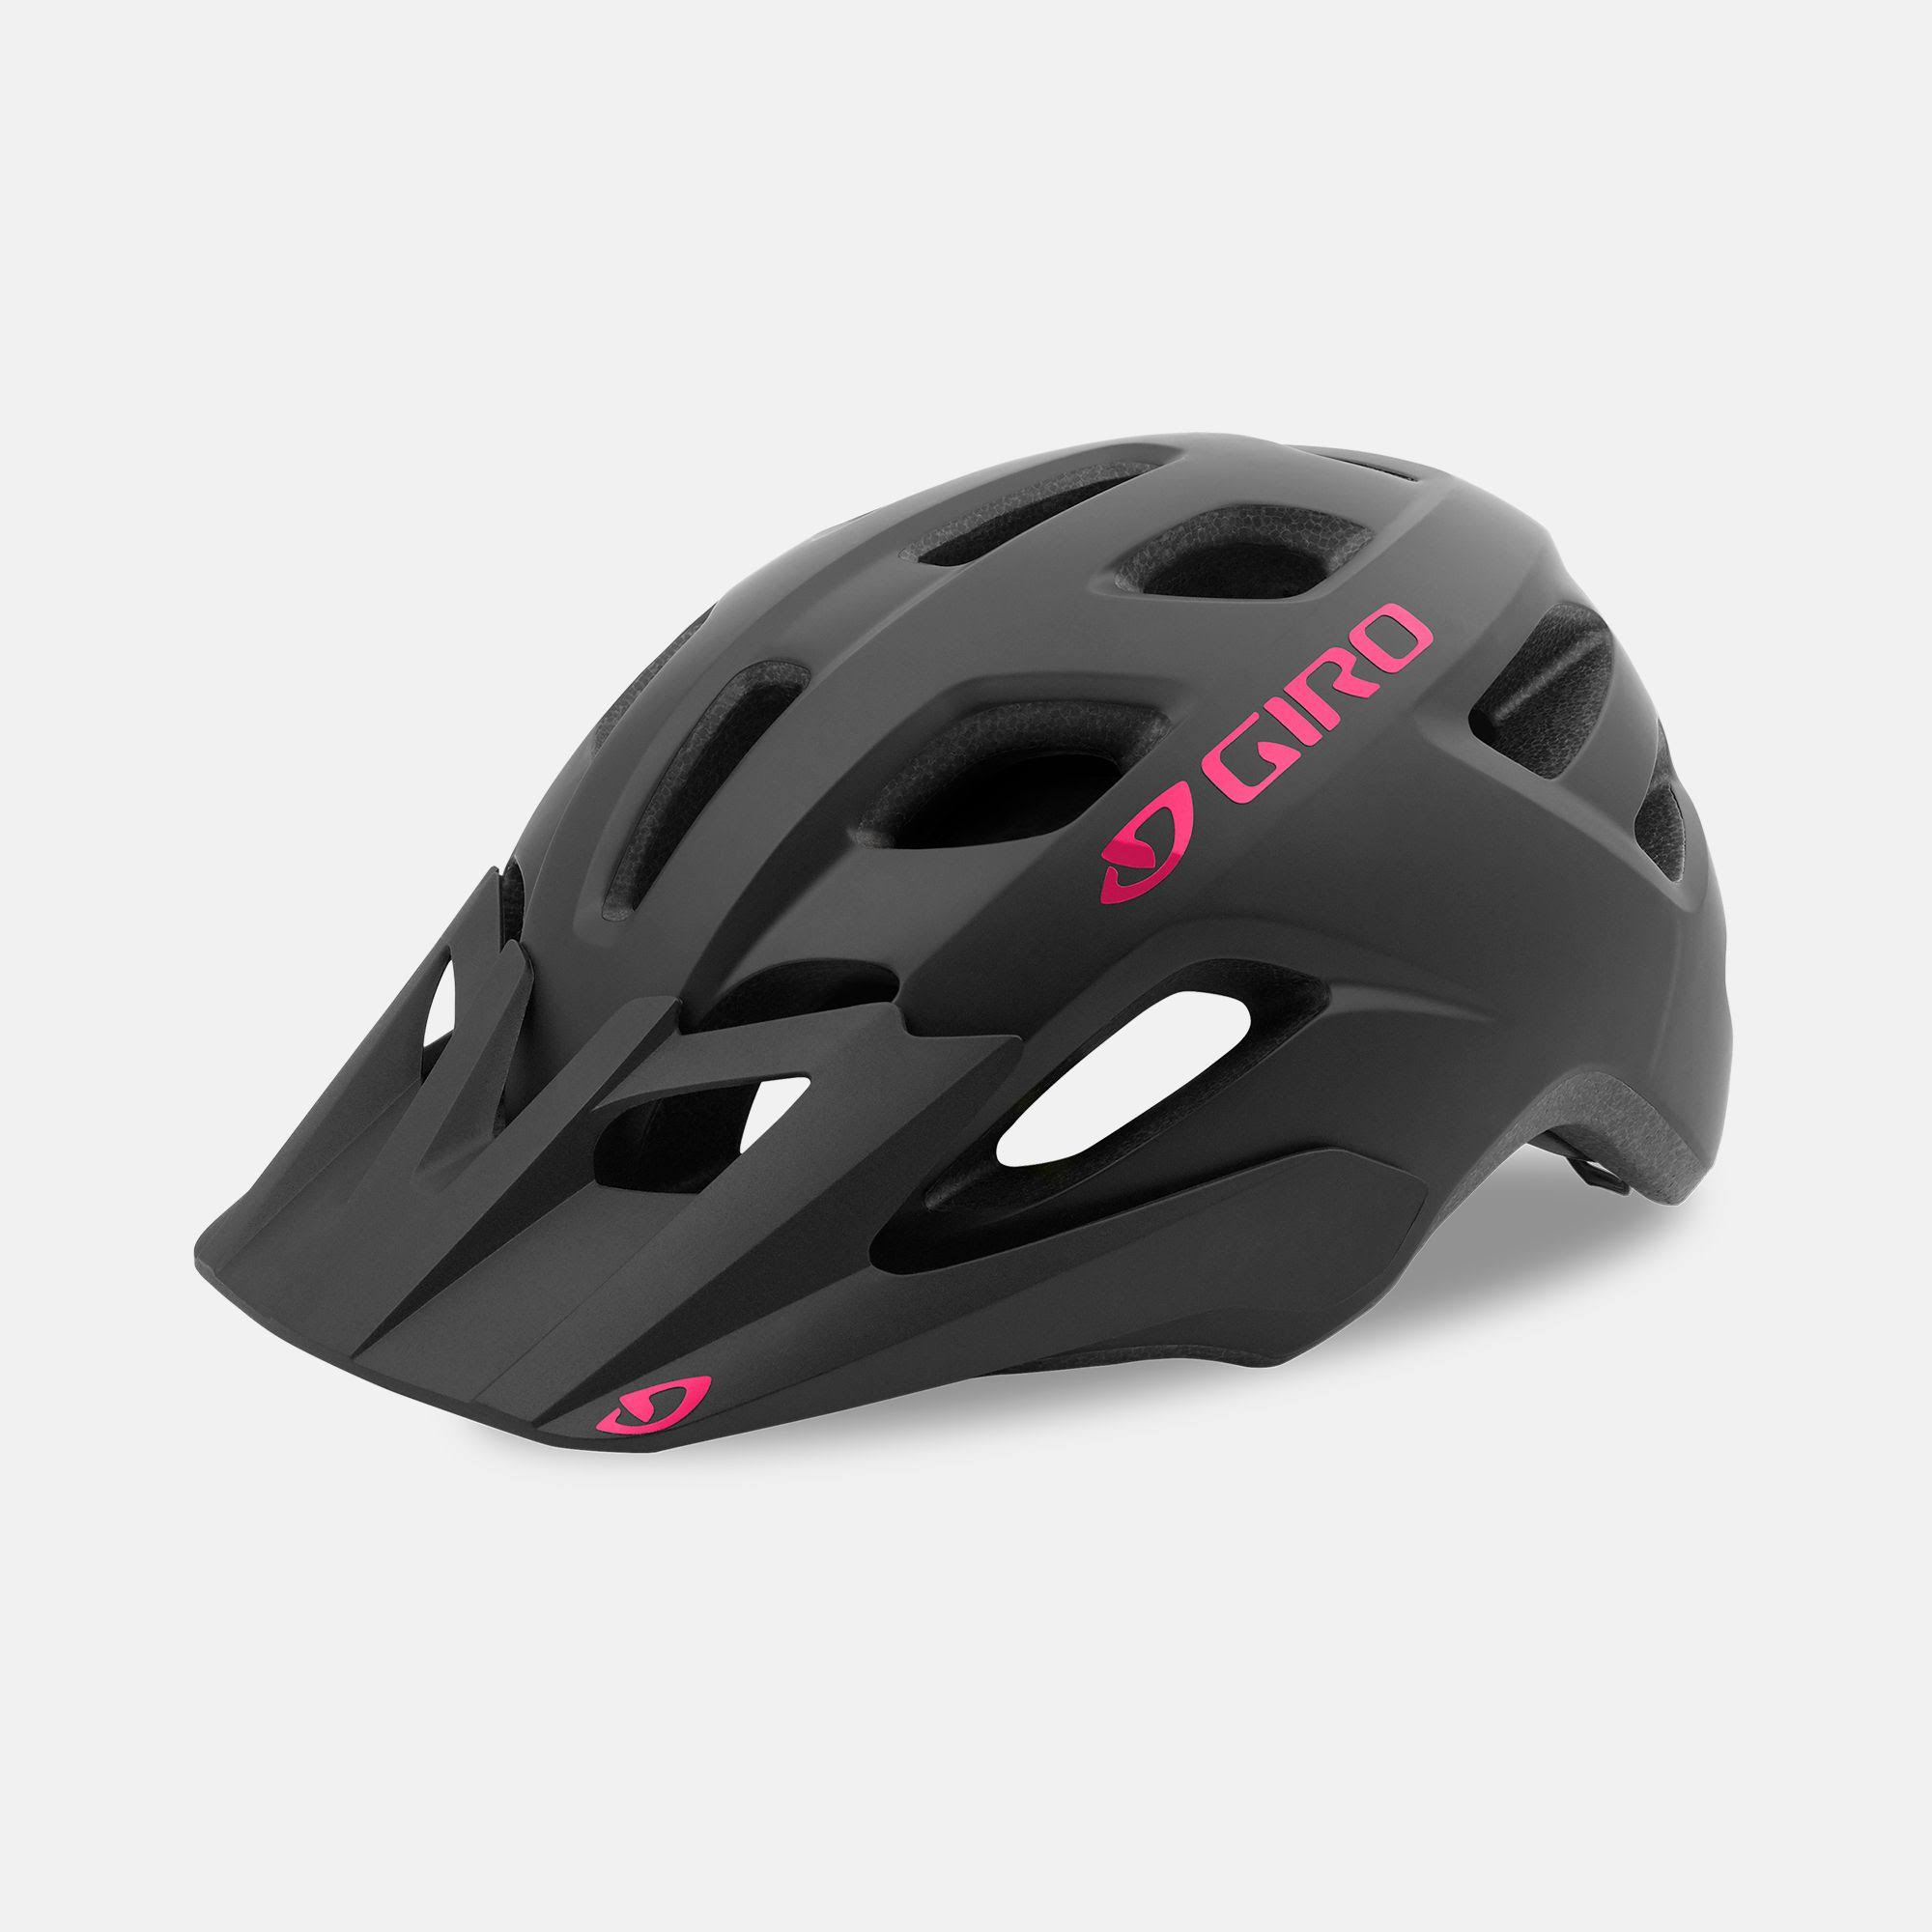 Giro Verce Bike Helmet - Matte Black